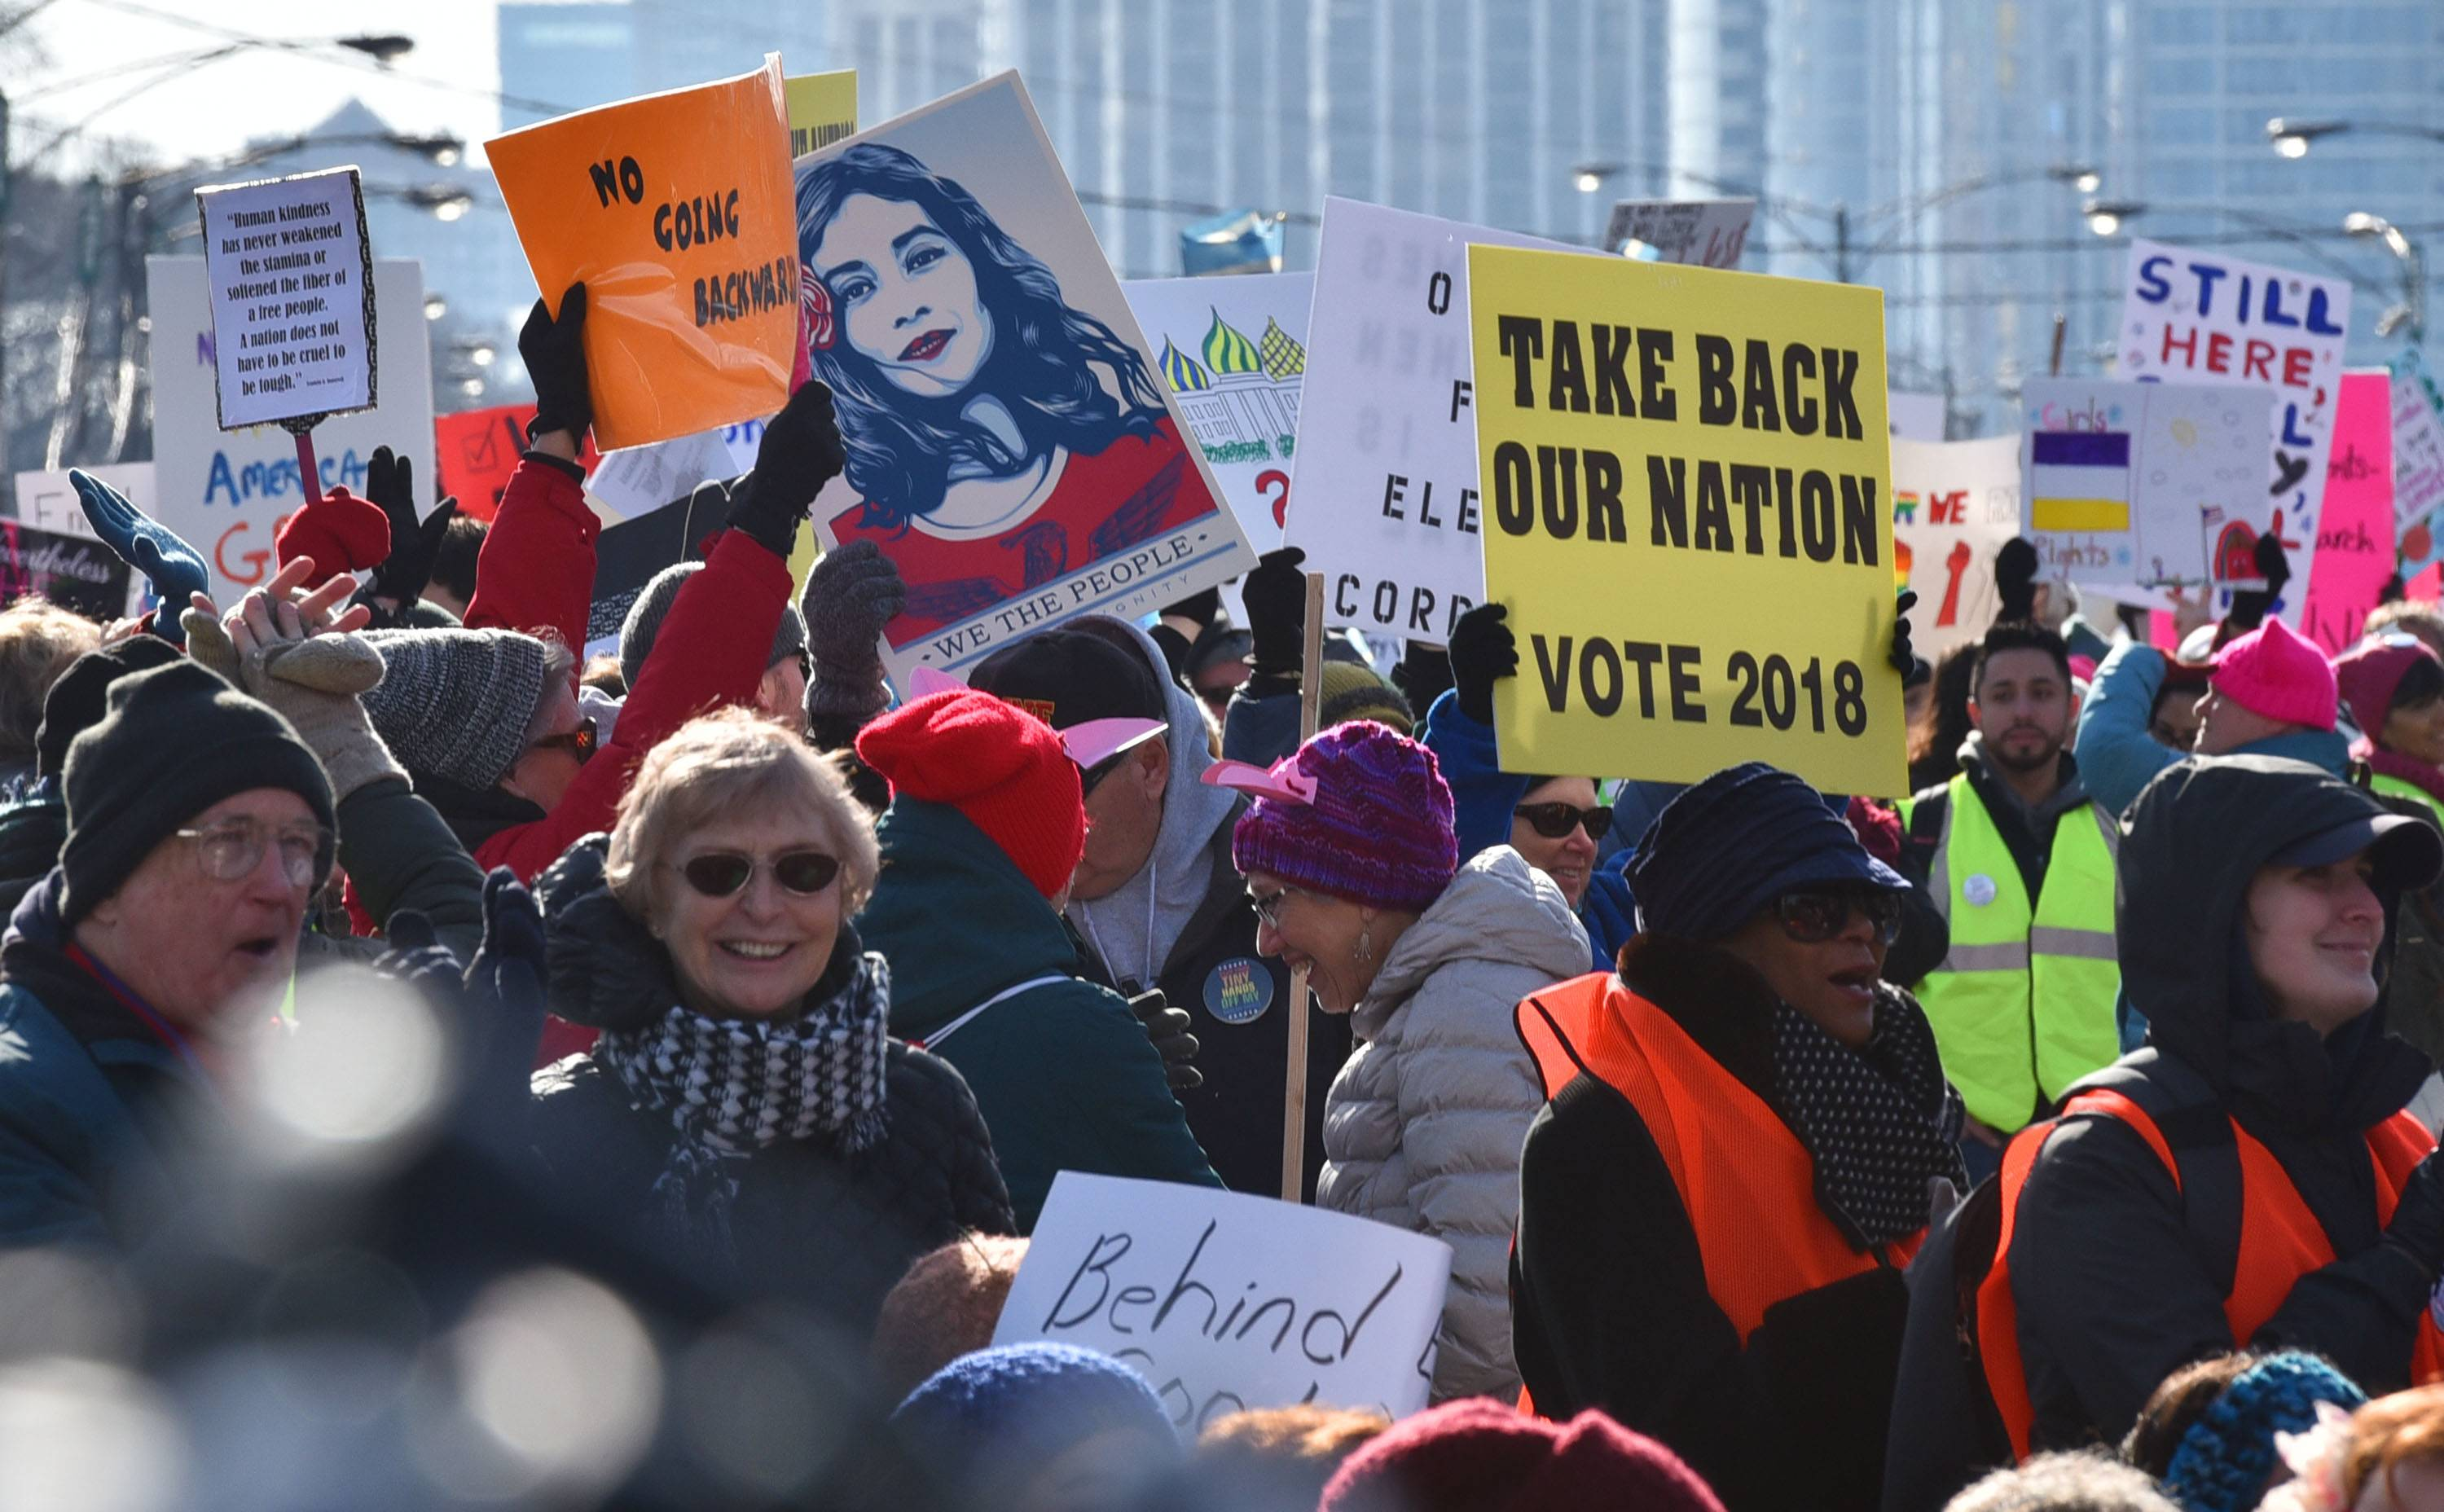 The crowd held signs with a common theme at the Women's March Chicago in Grant Park Saturday.